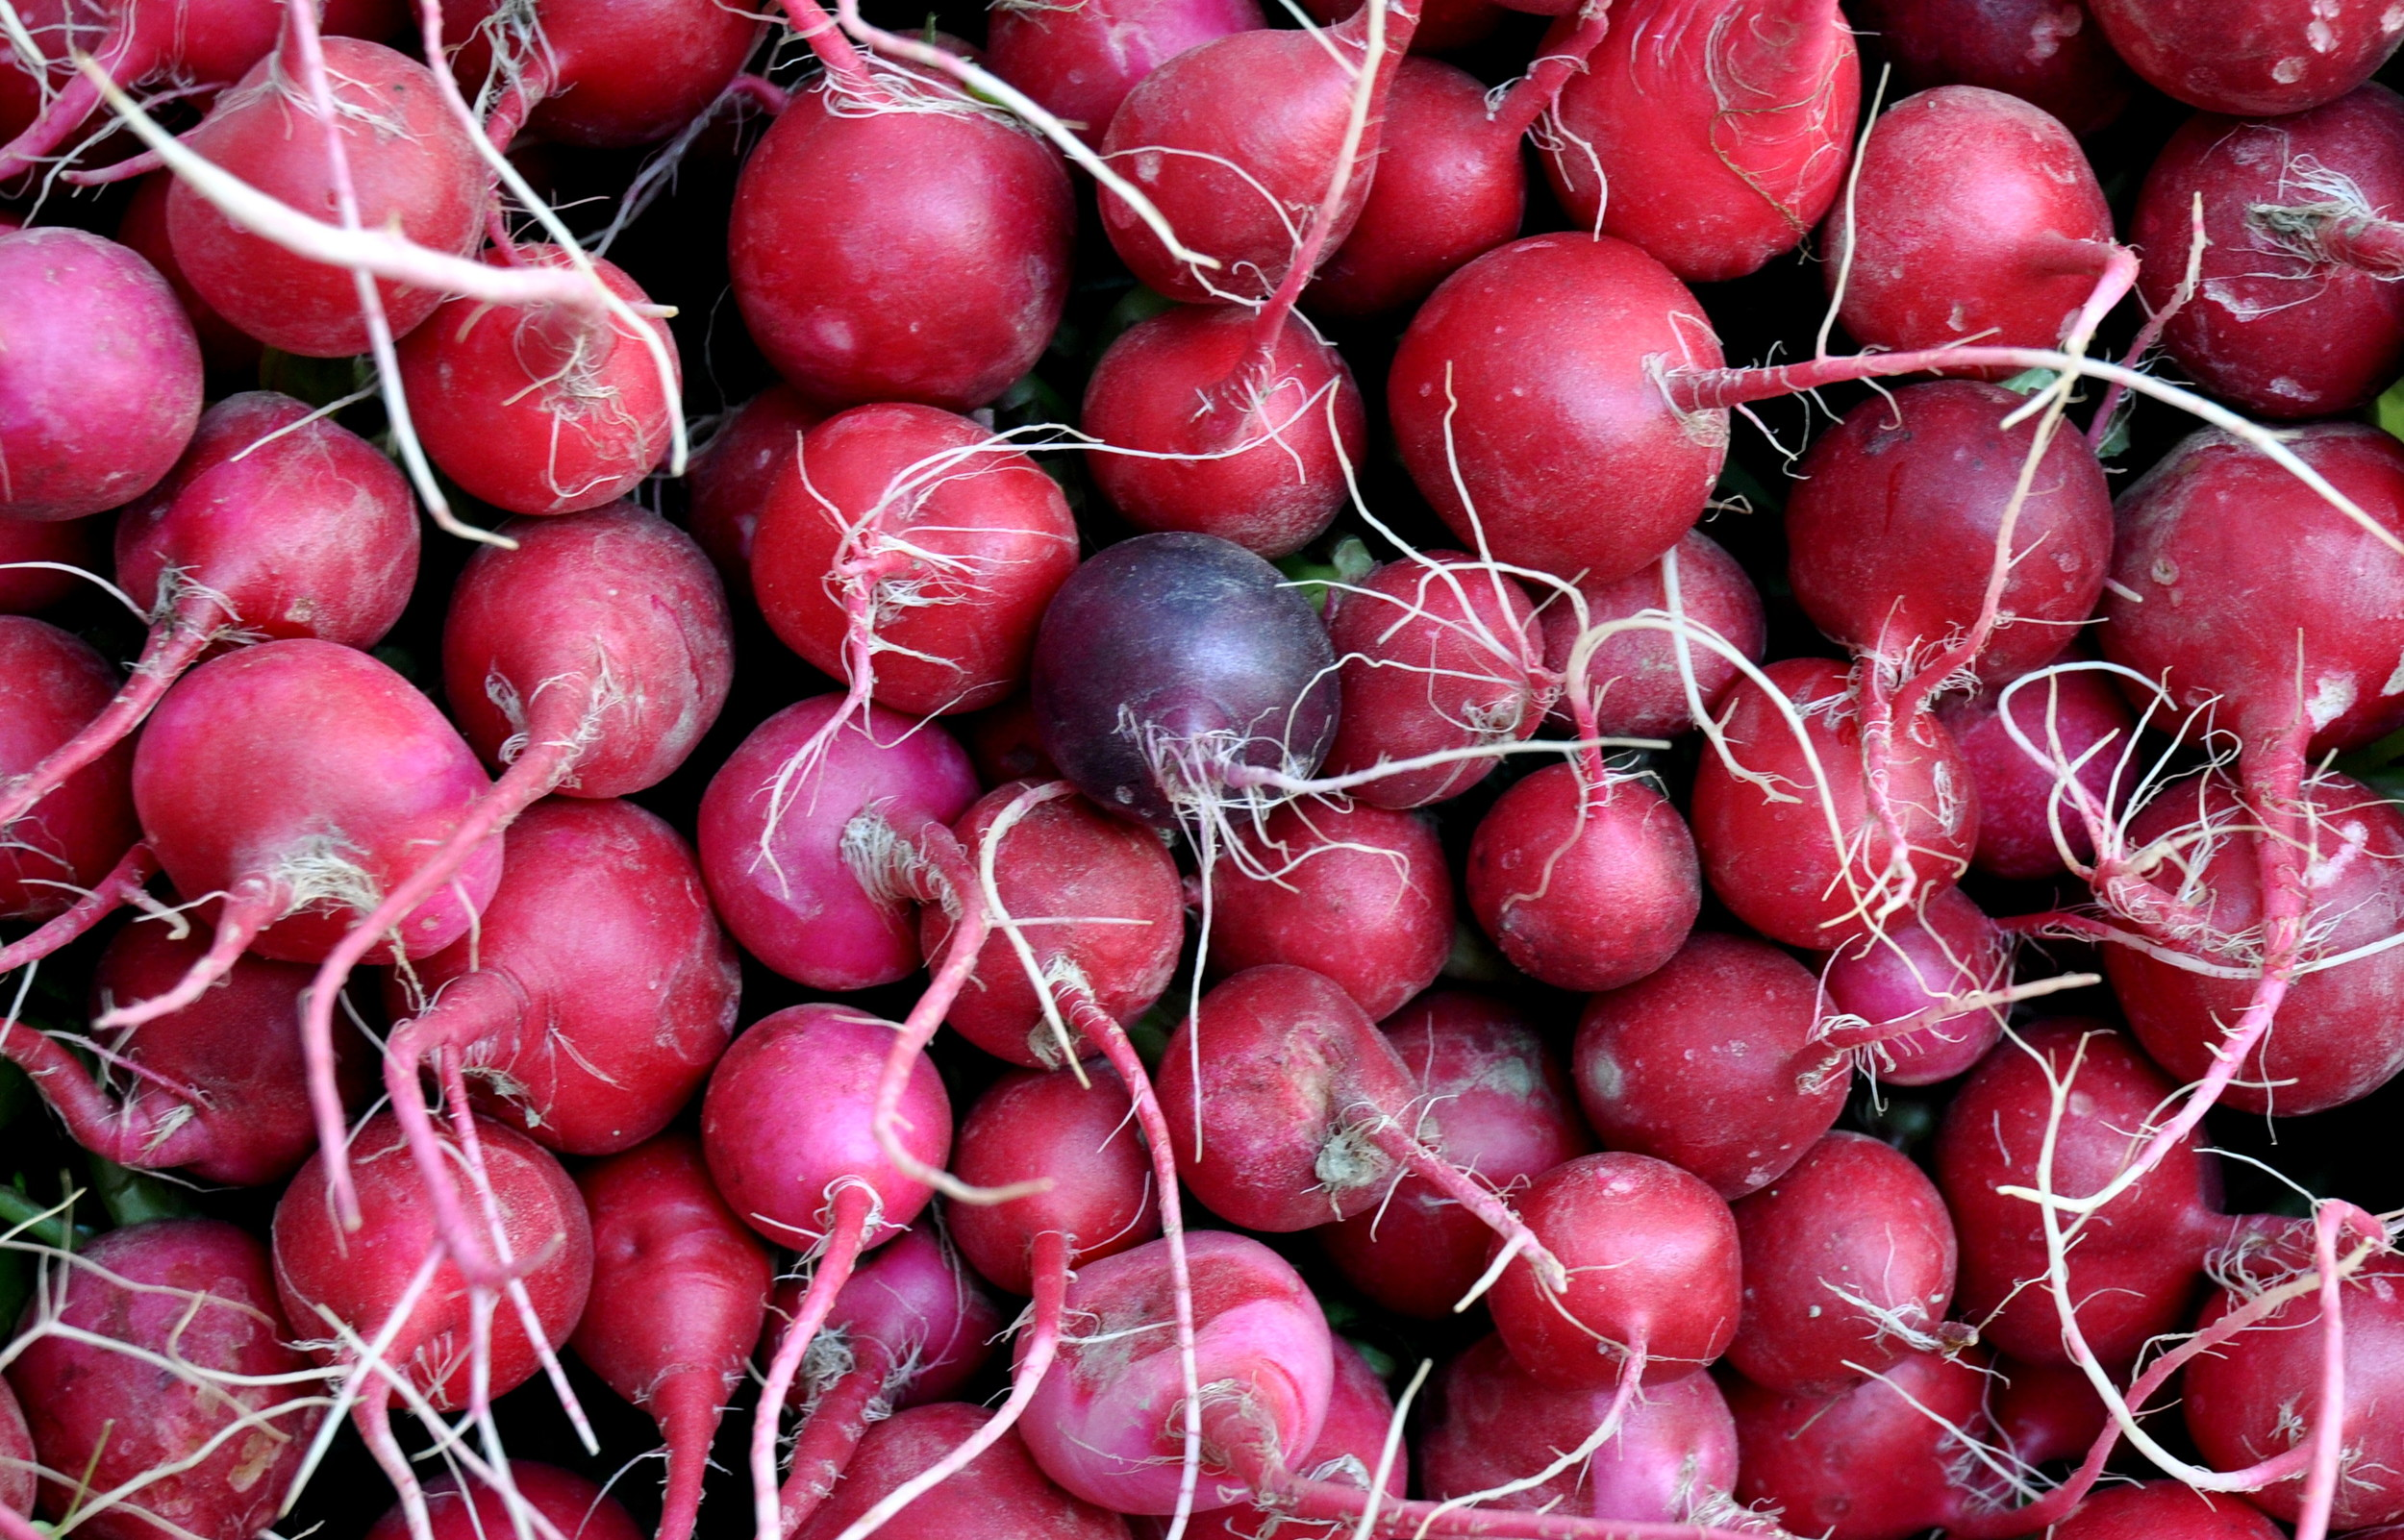 Red radishes from Oxbow Farm. Photo copyright 2014 by Zachary D. Lyons.